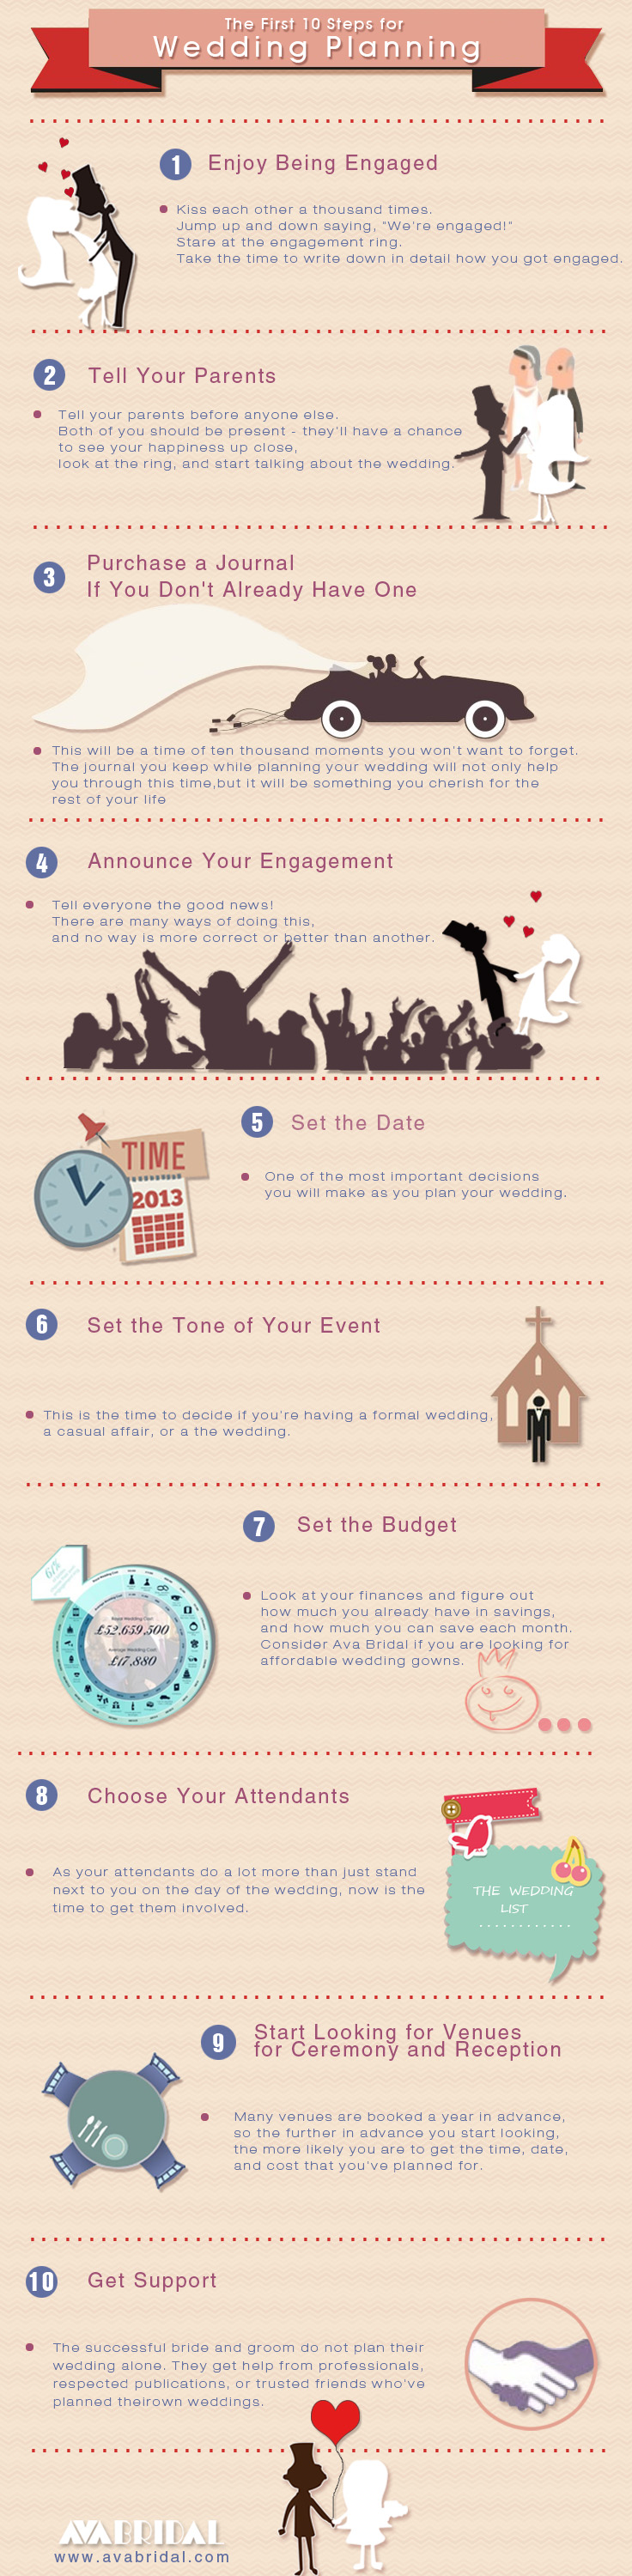 infographic - first ten steps for wedding planning